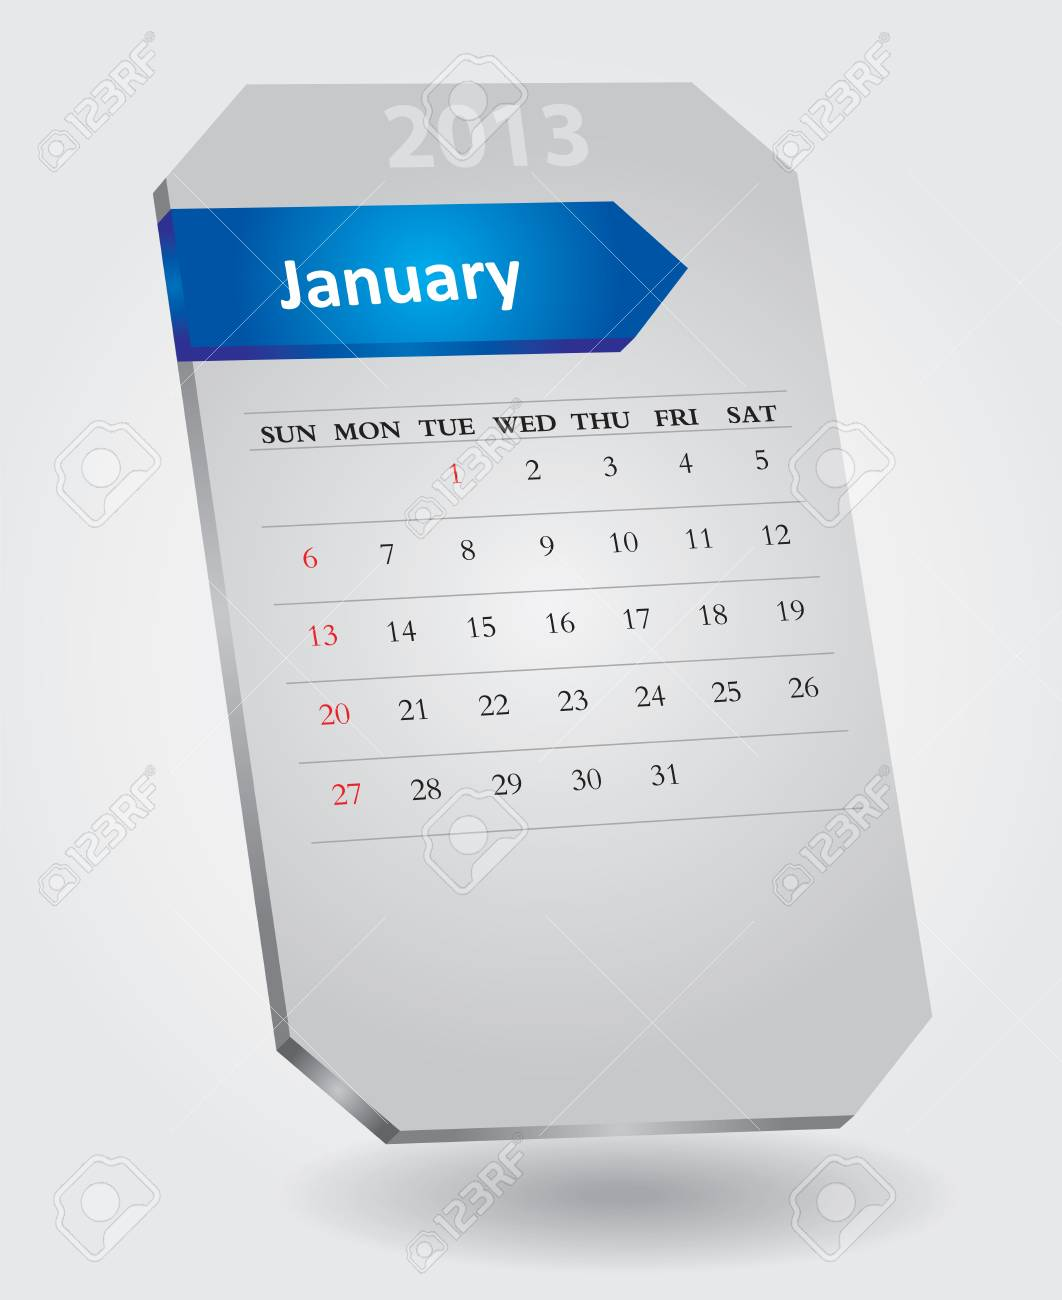 Classical monthly calendar for January, 2013 Stock Vector - 15682582